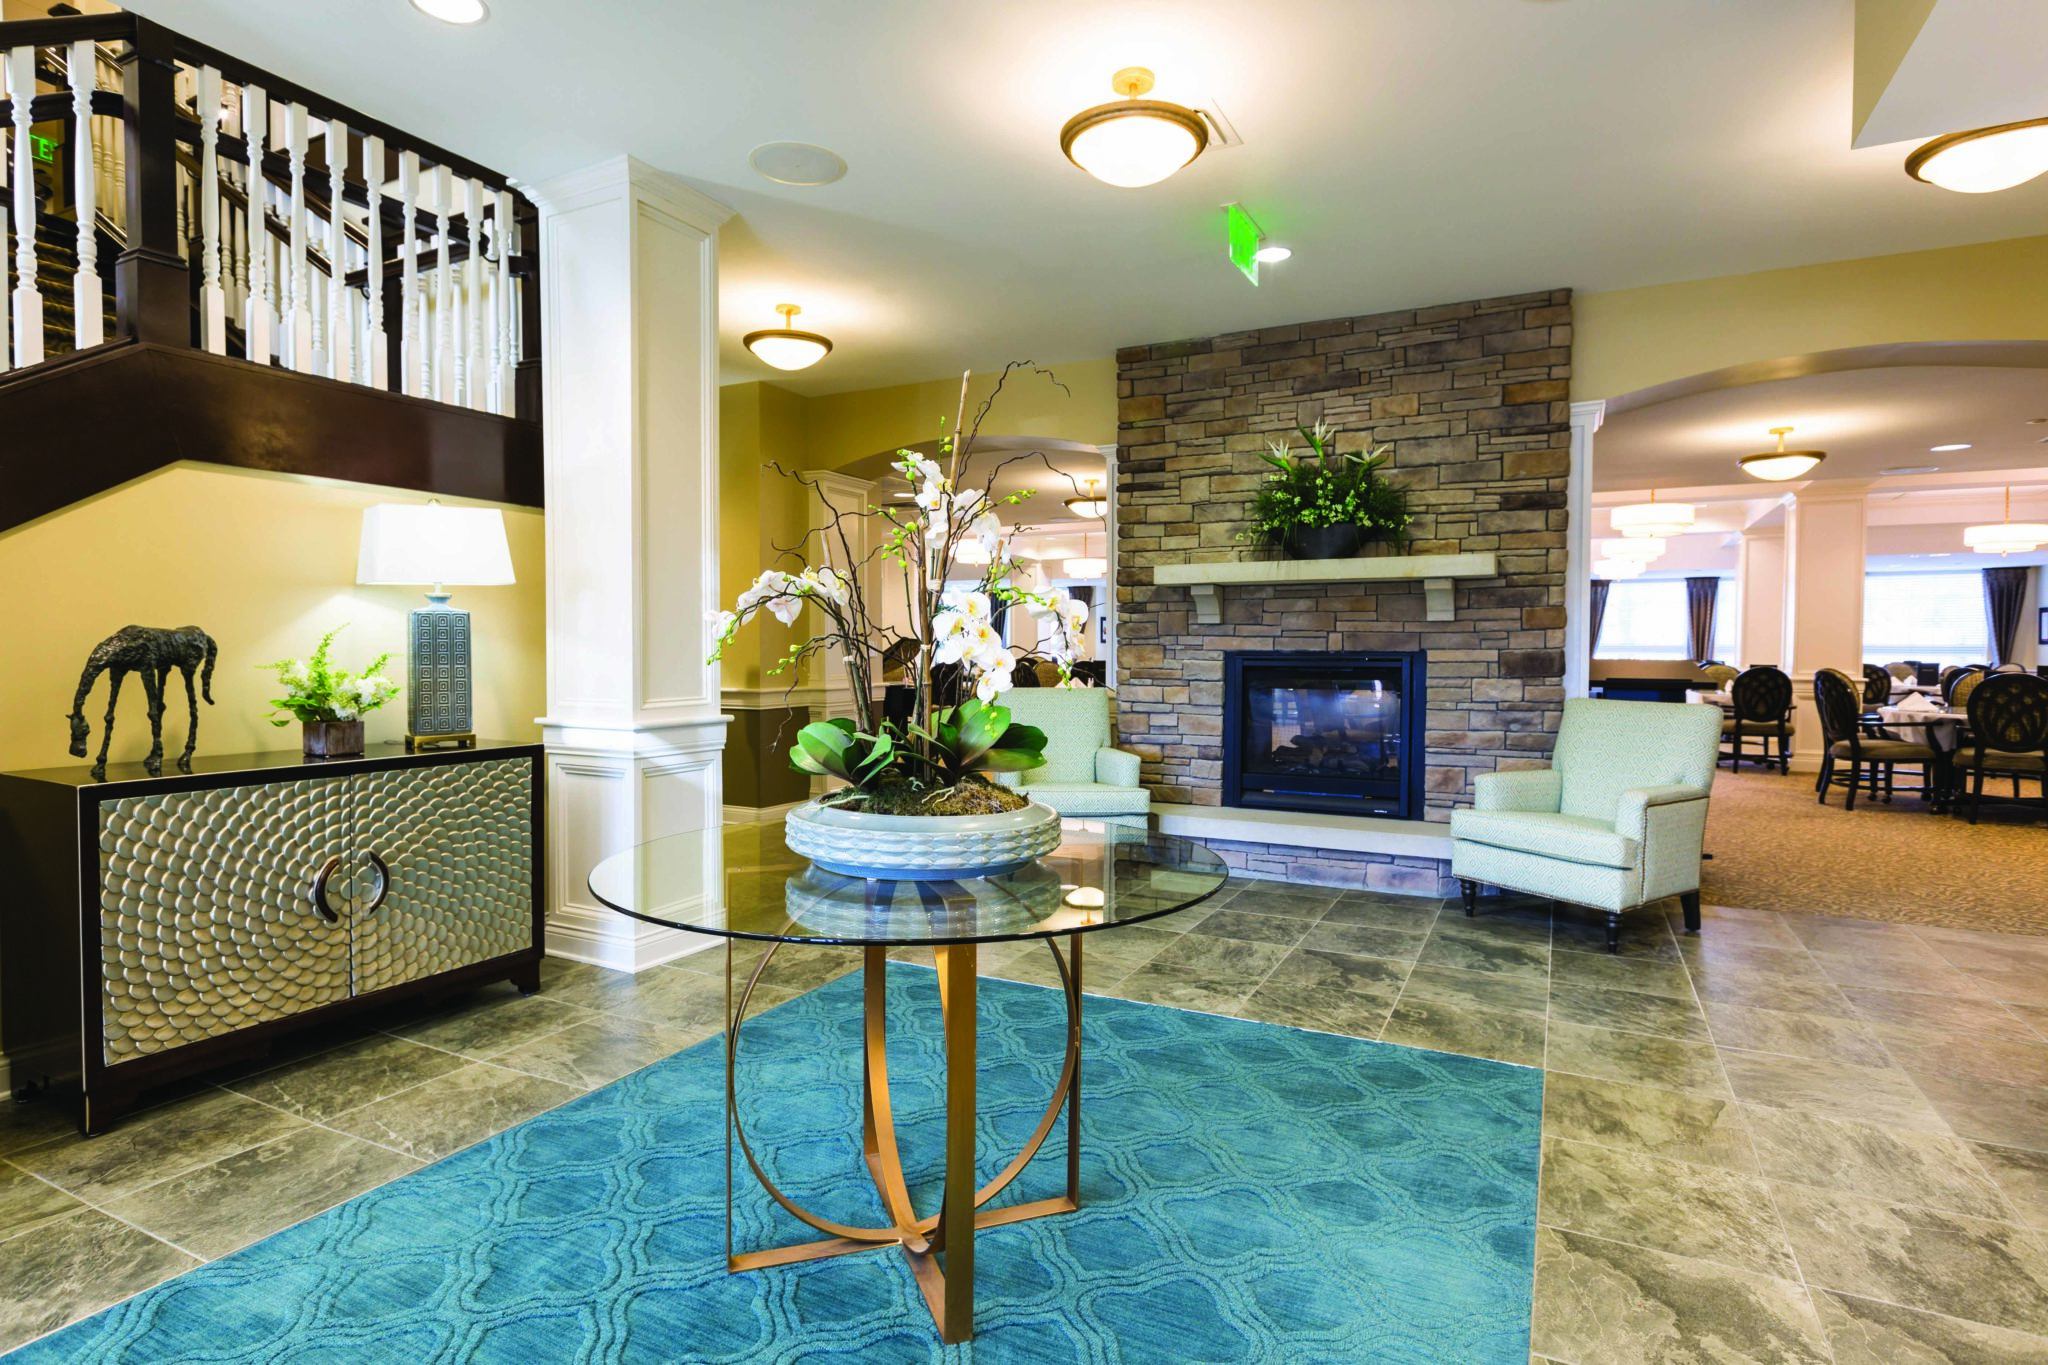 Sycamore Creek Independent Living Lobby 2.jpg